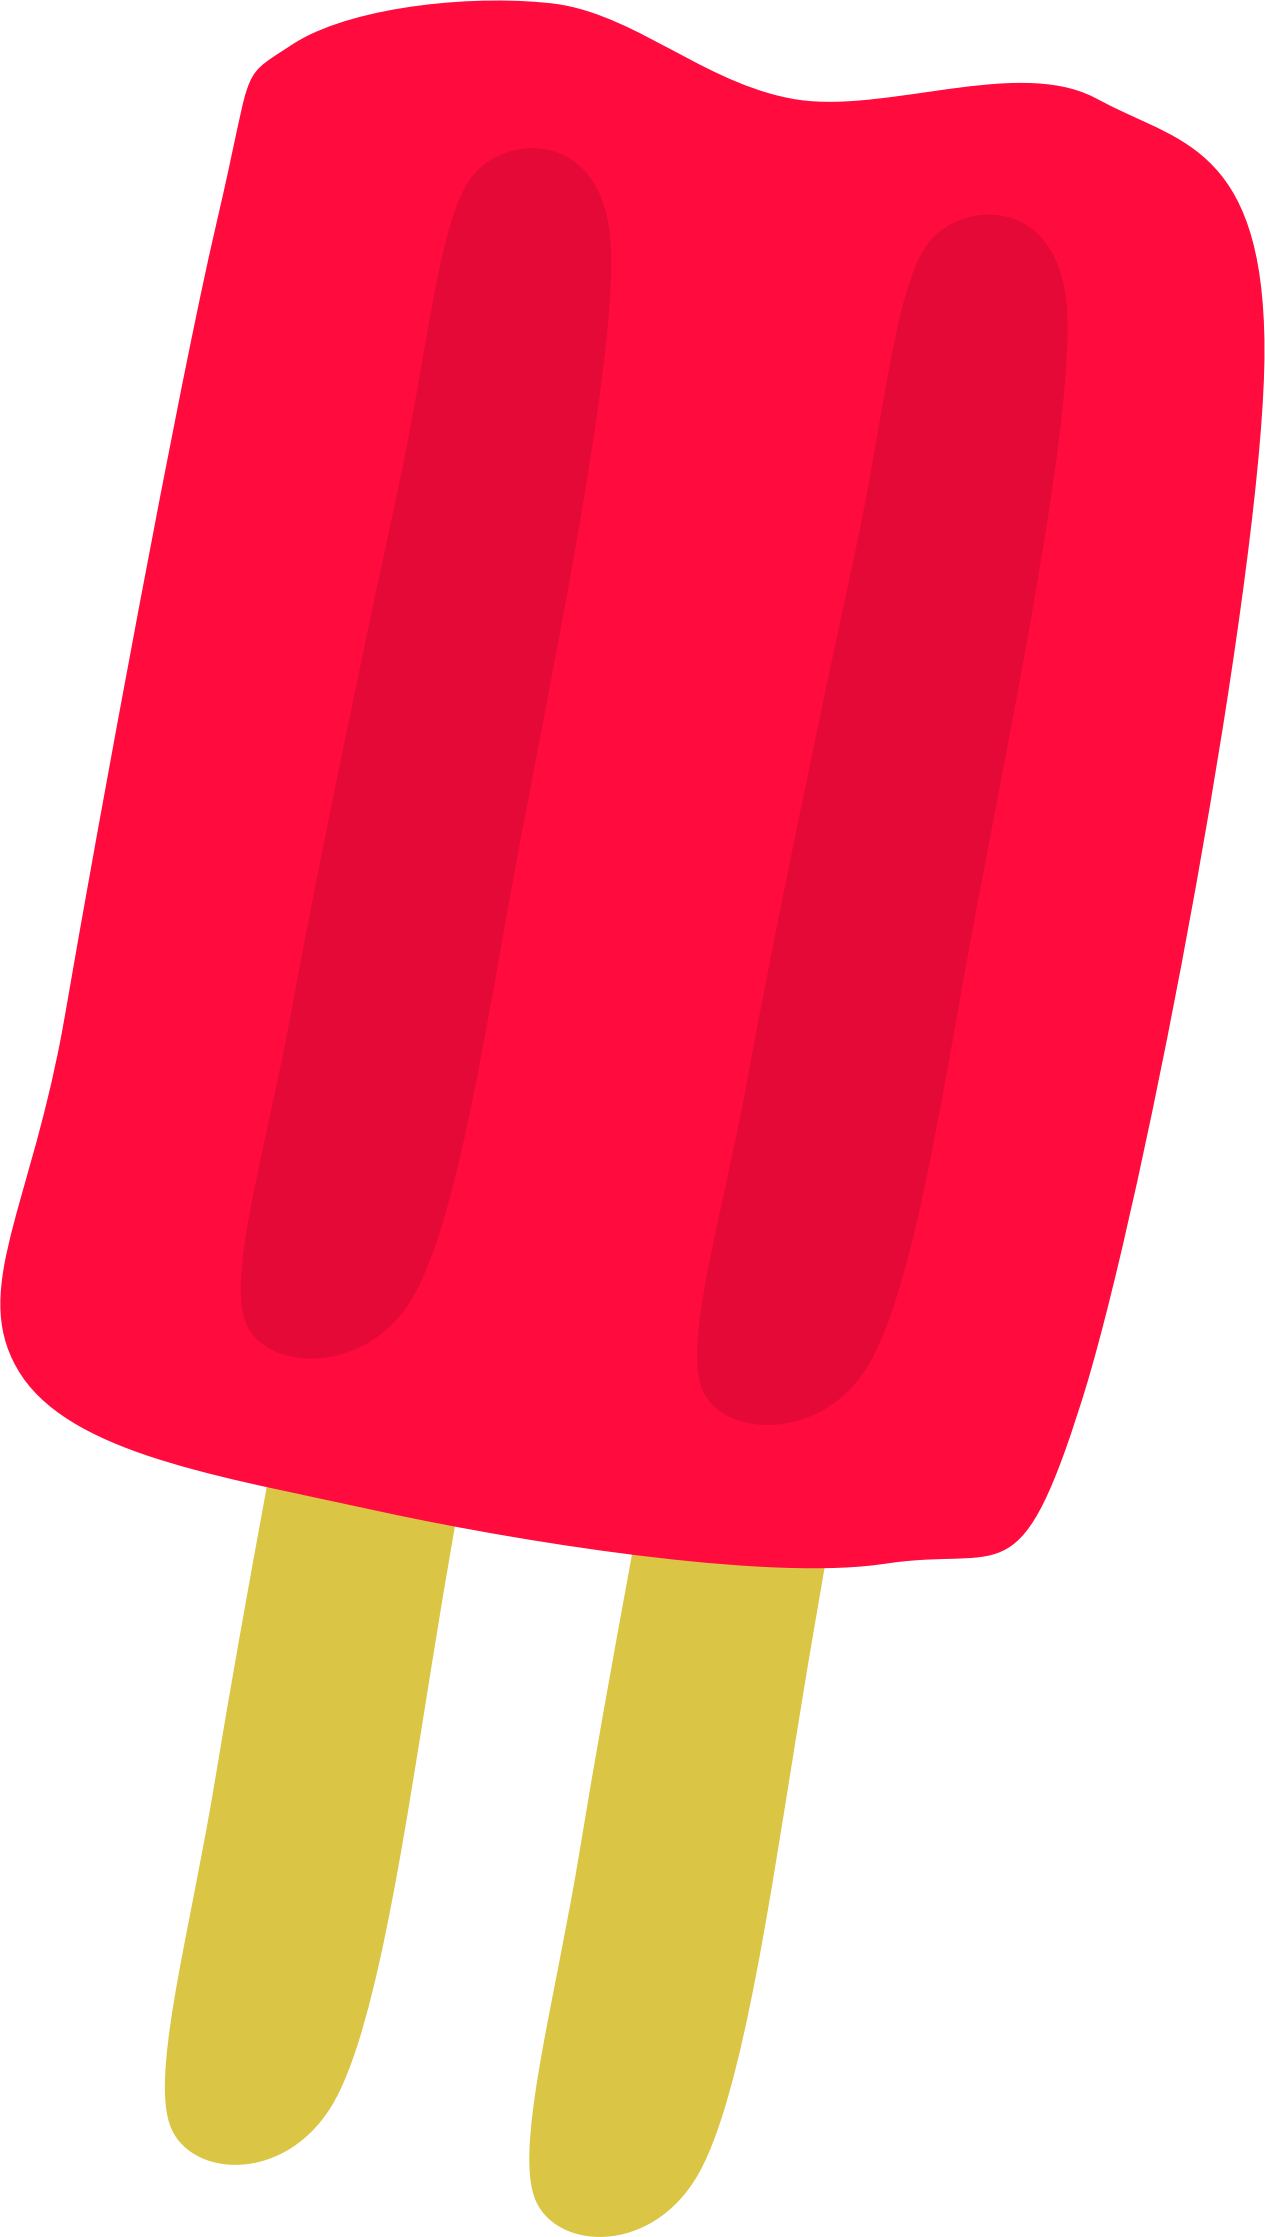 Popsicle png. Red icons free and